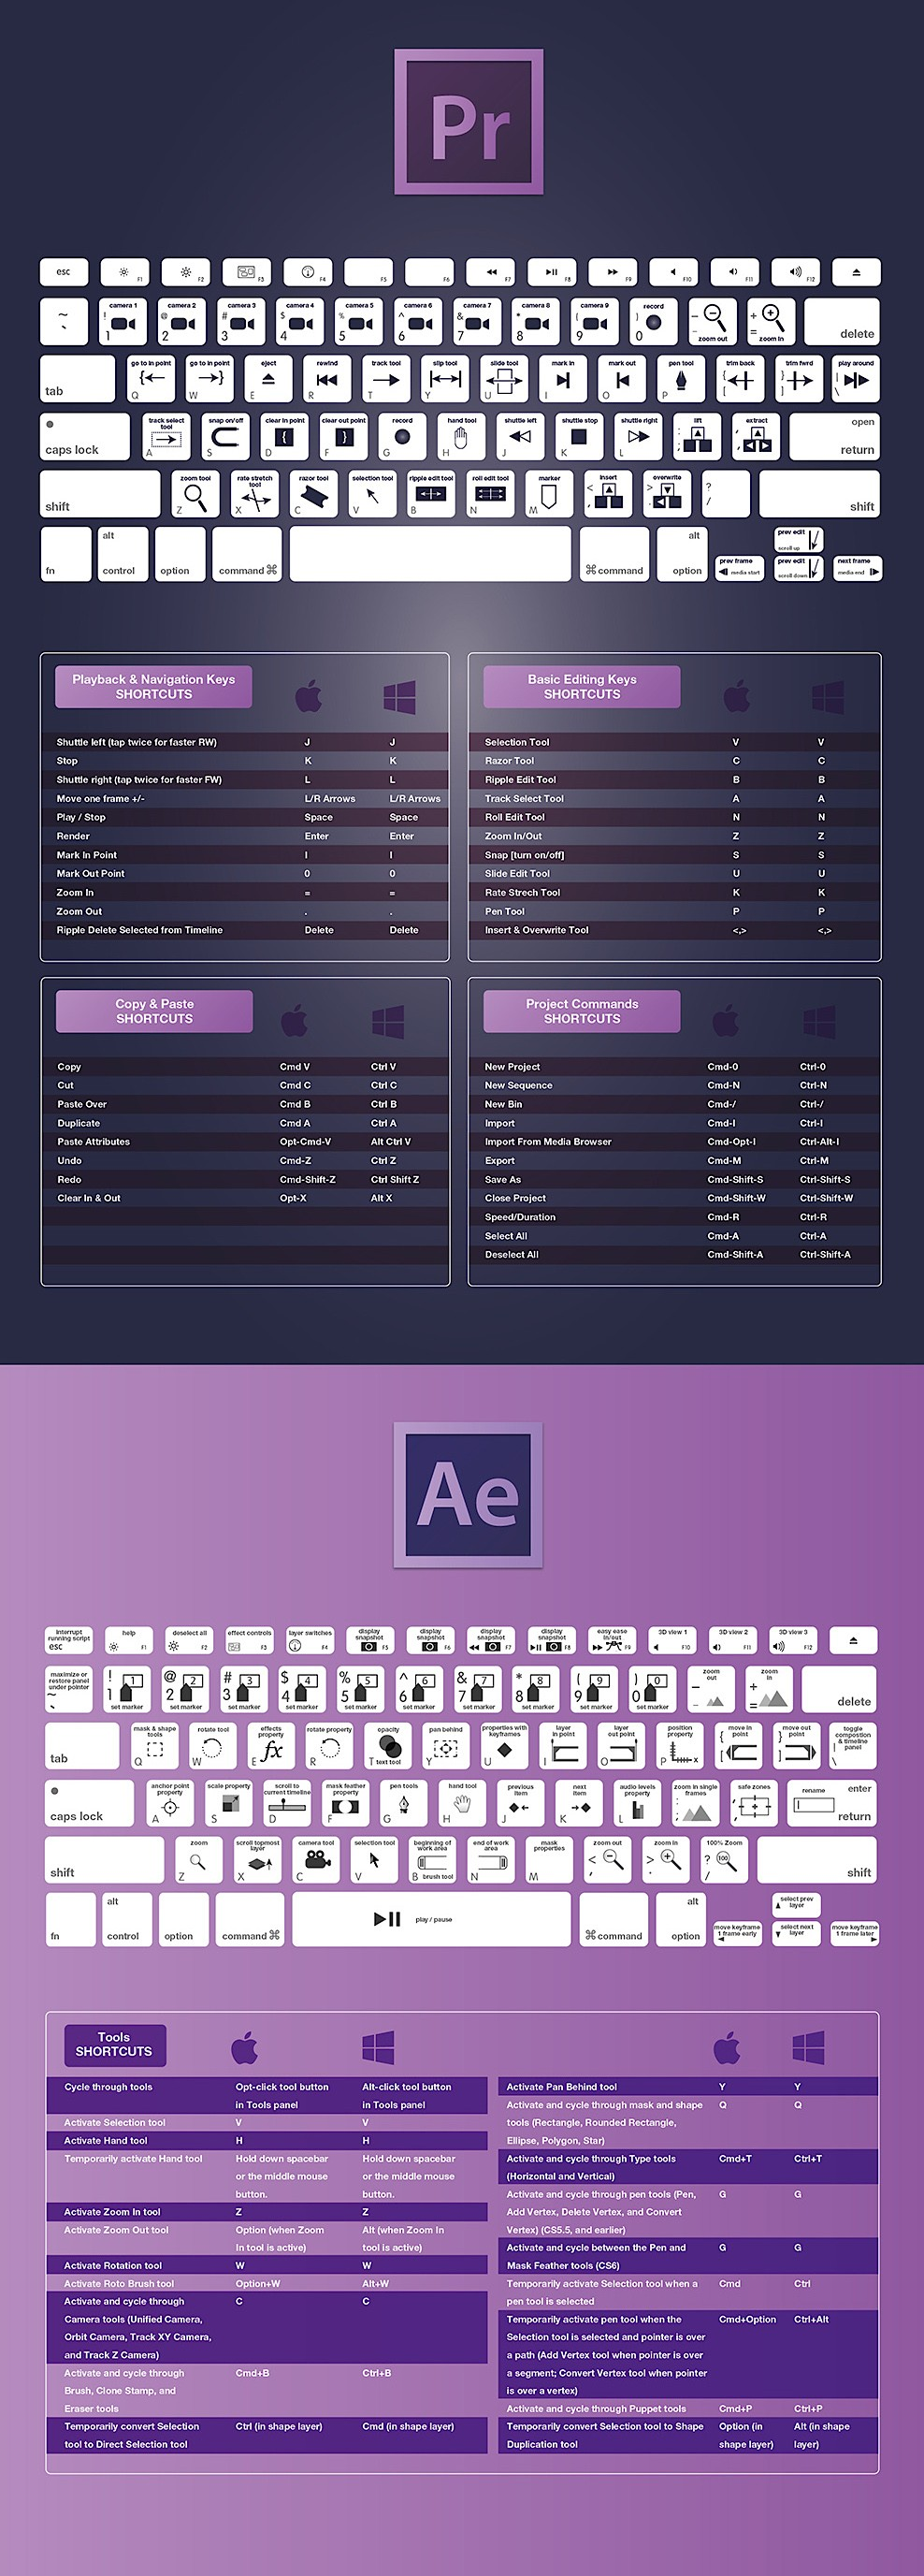 premiere_pro_and_after_effects_keyboard_shortcuts